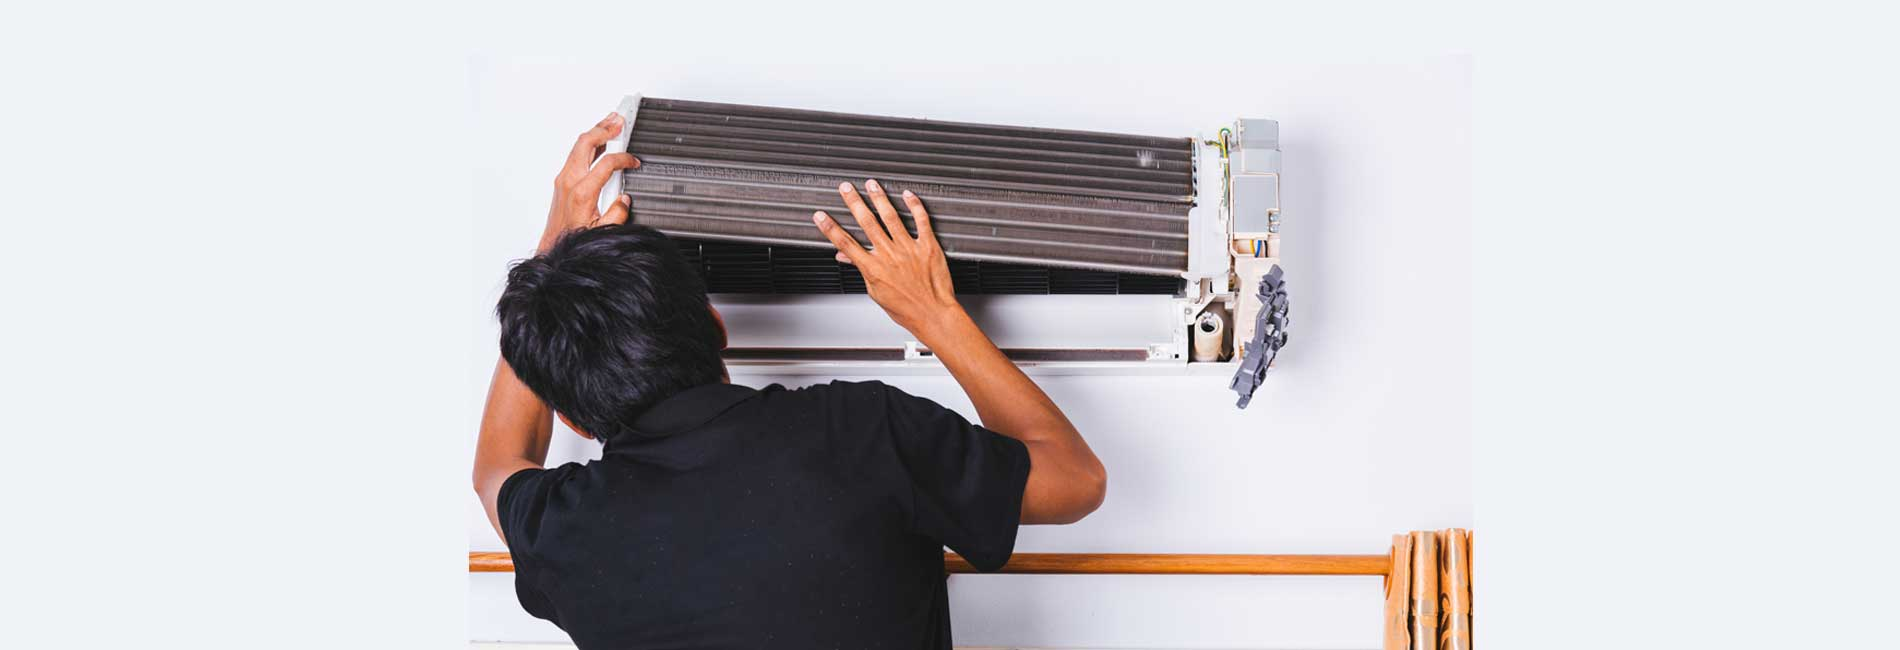 Bluestar AC Uninstallation in Kandigai